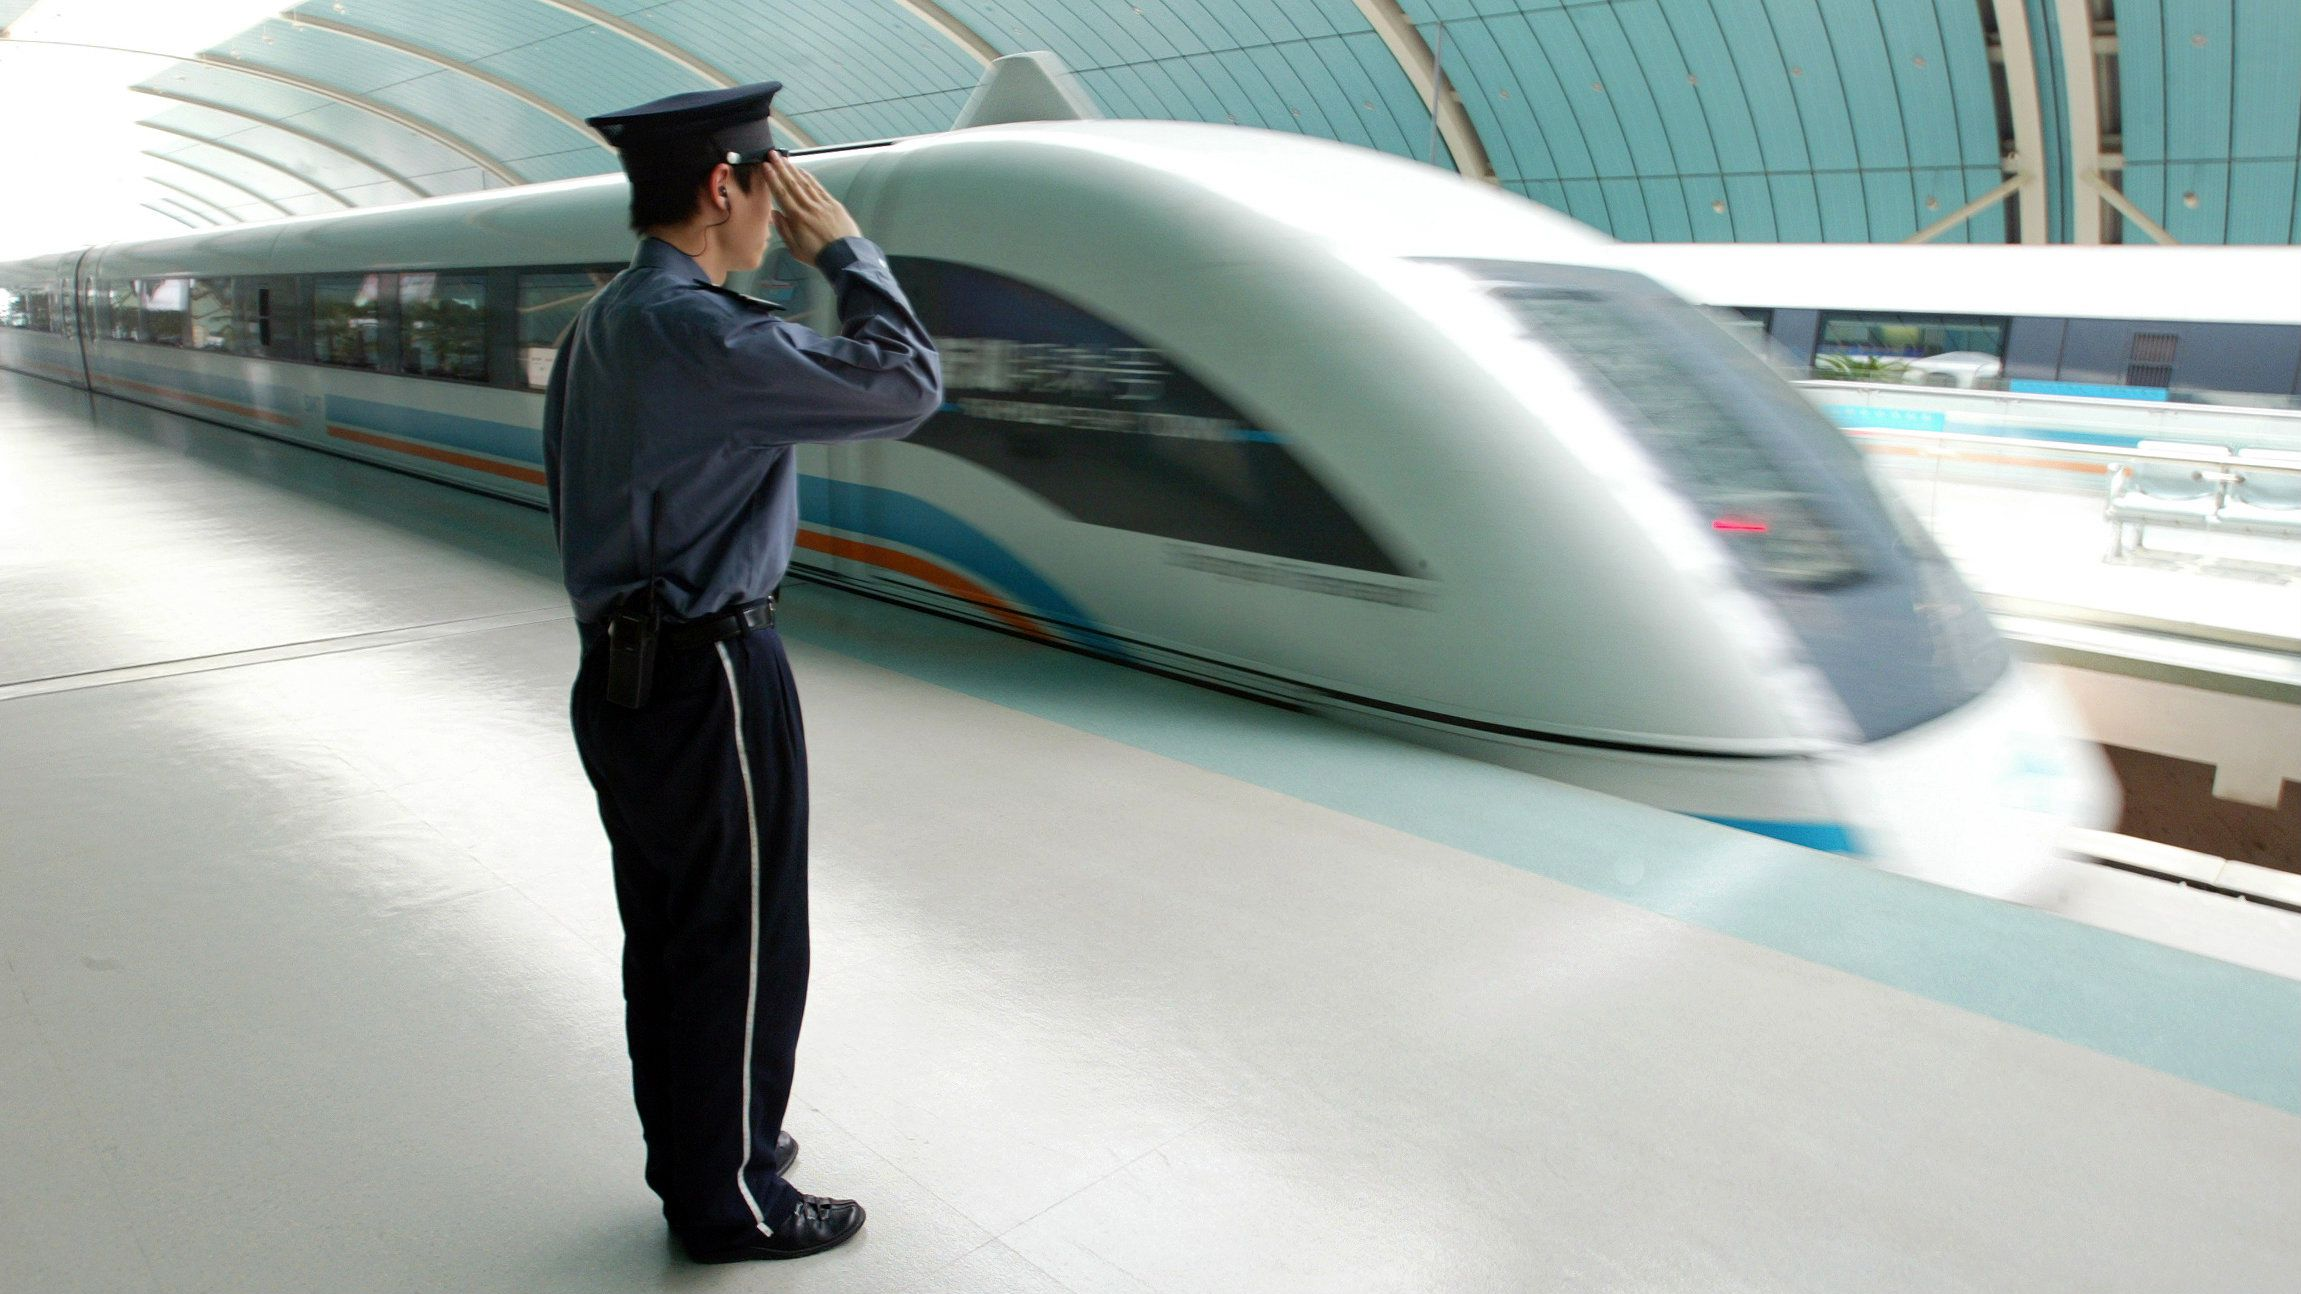 A Chinese security personnel salutes from the platform, next to a maglev train in Shanghai  May 23, 2006. German Chancellor Angela Merkel on Tuesday toured the Shanghai control room of a high-speed train that showcases German magnetic levitation technology, touting cooperation with China but voicing concern about patent piracy. REUTERS/Aly Song